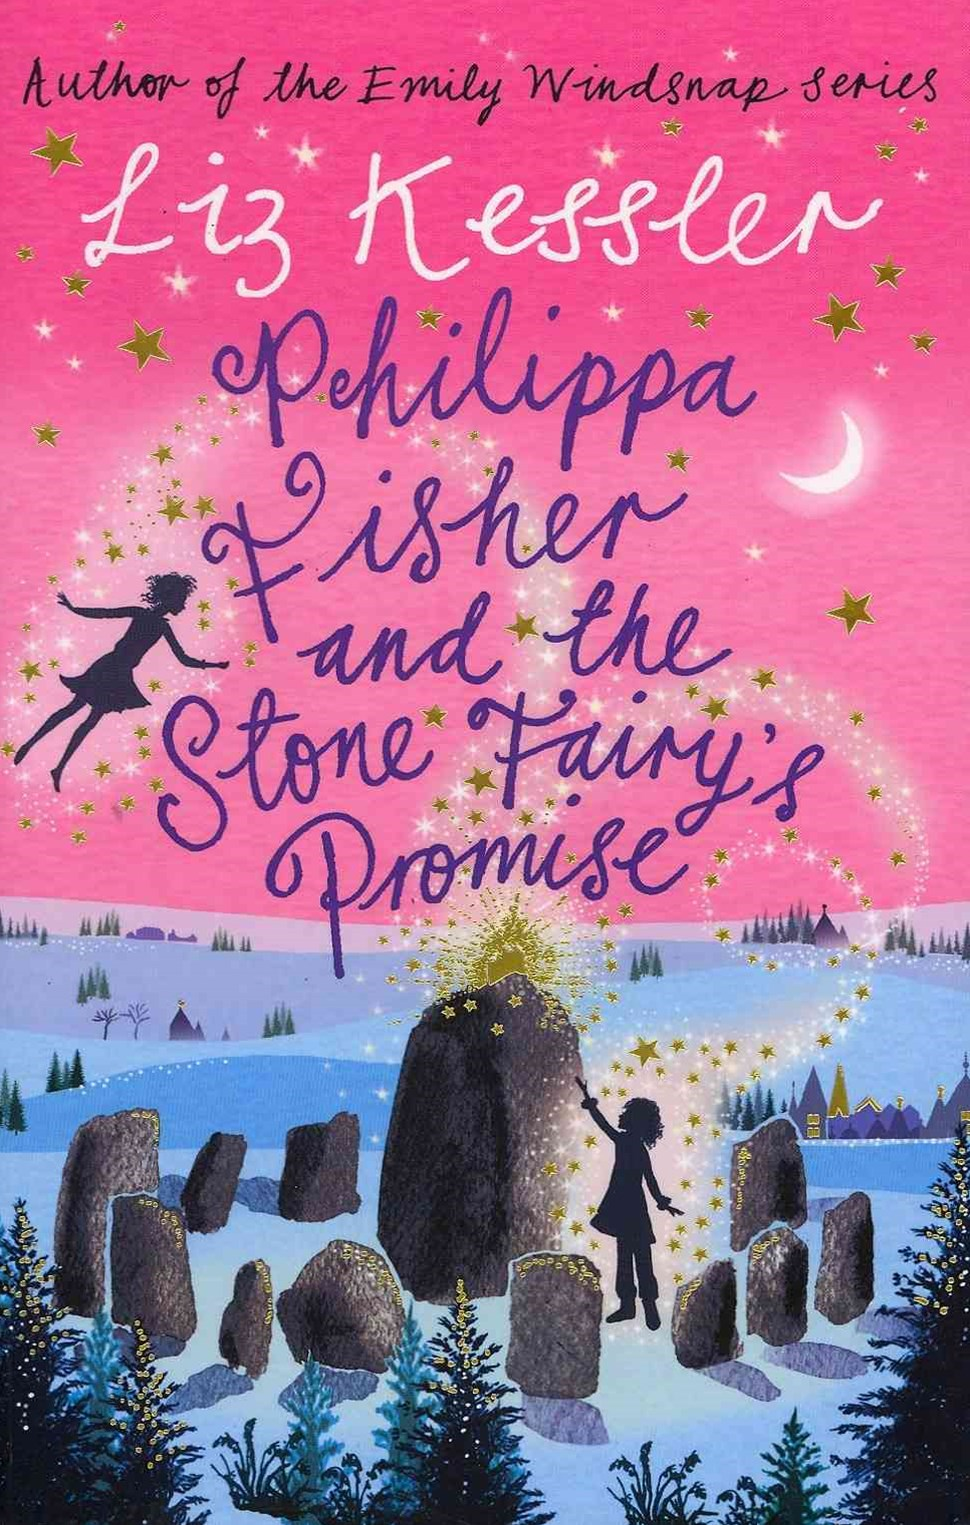 Philippa Fisher: Philippa Fisher and the Stone Fairy's Promise